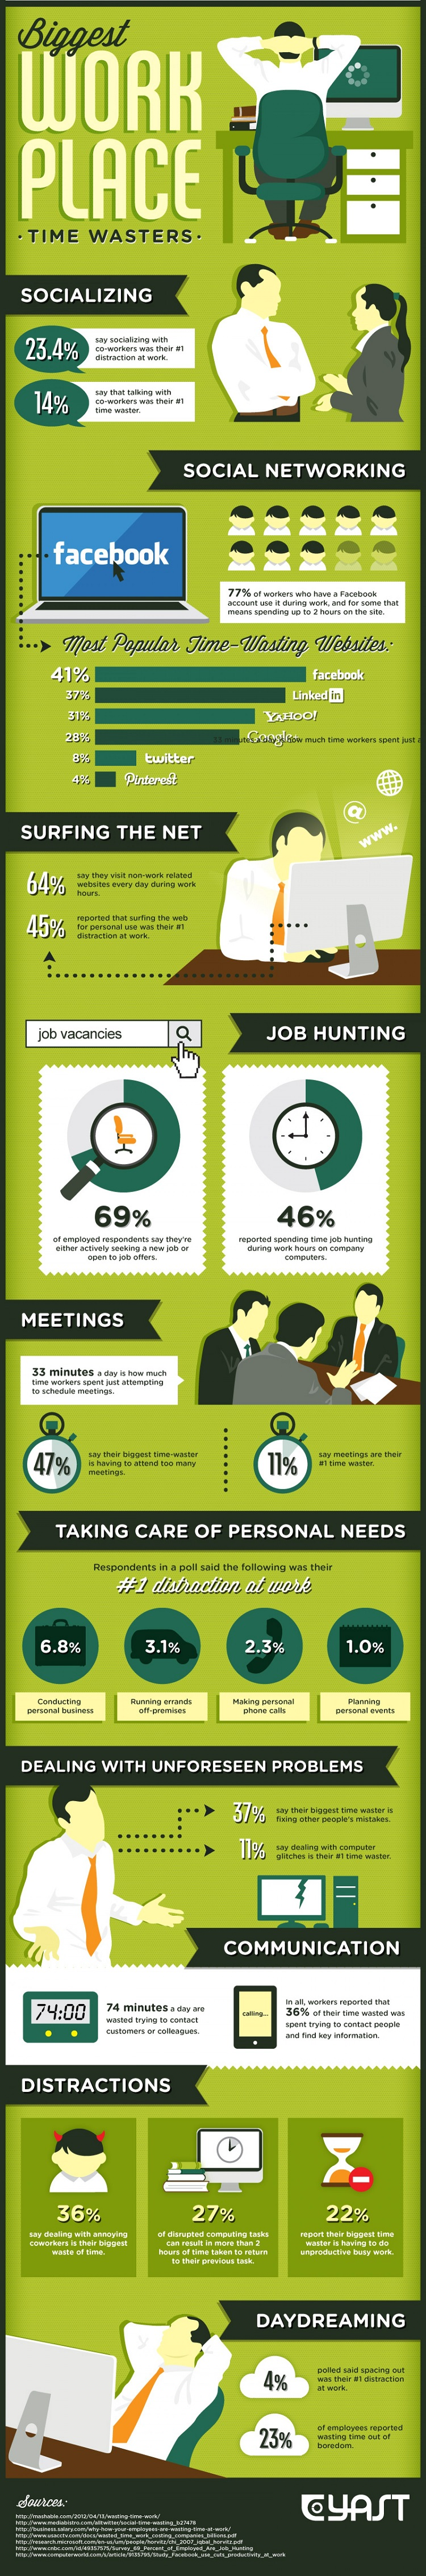 Biggest time wasters at work infographic